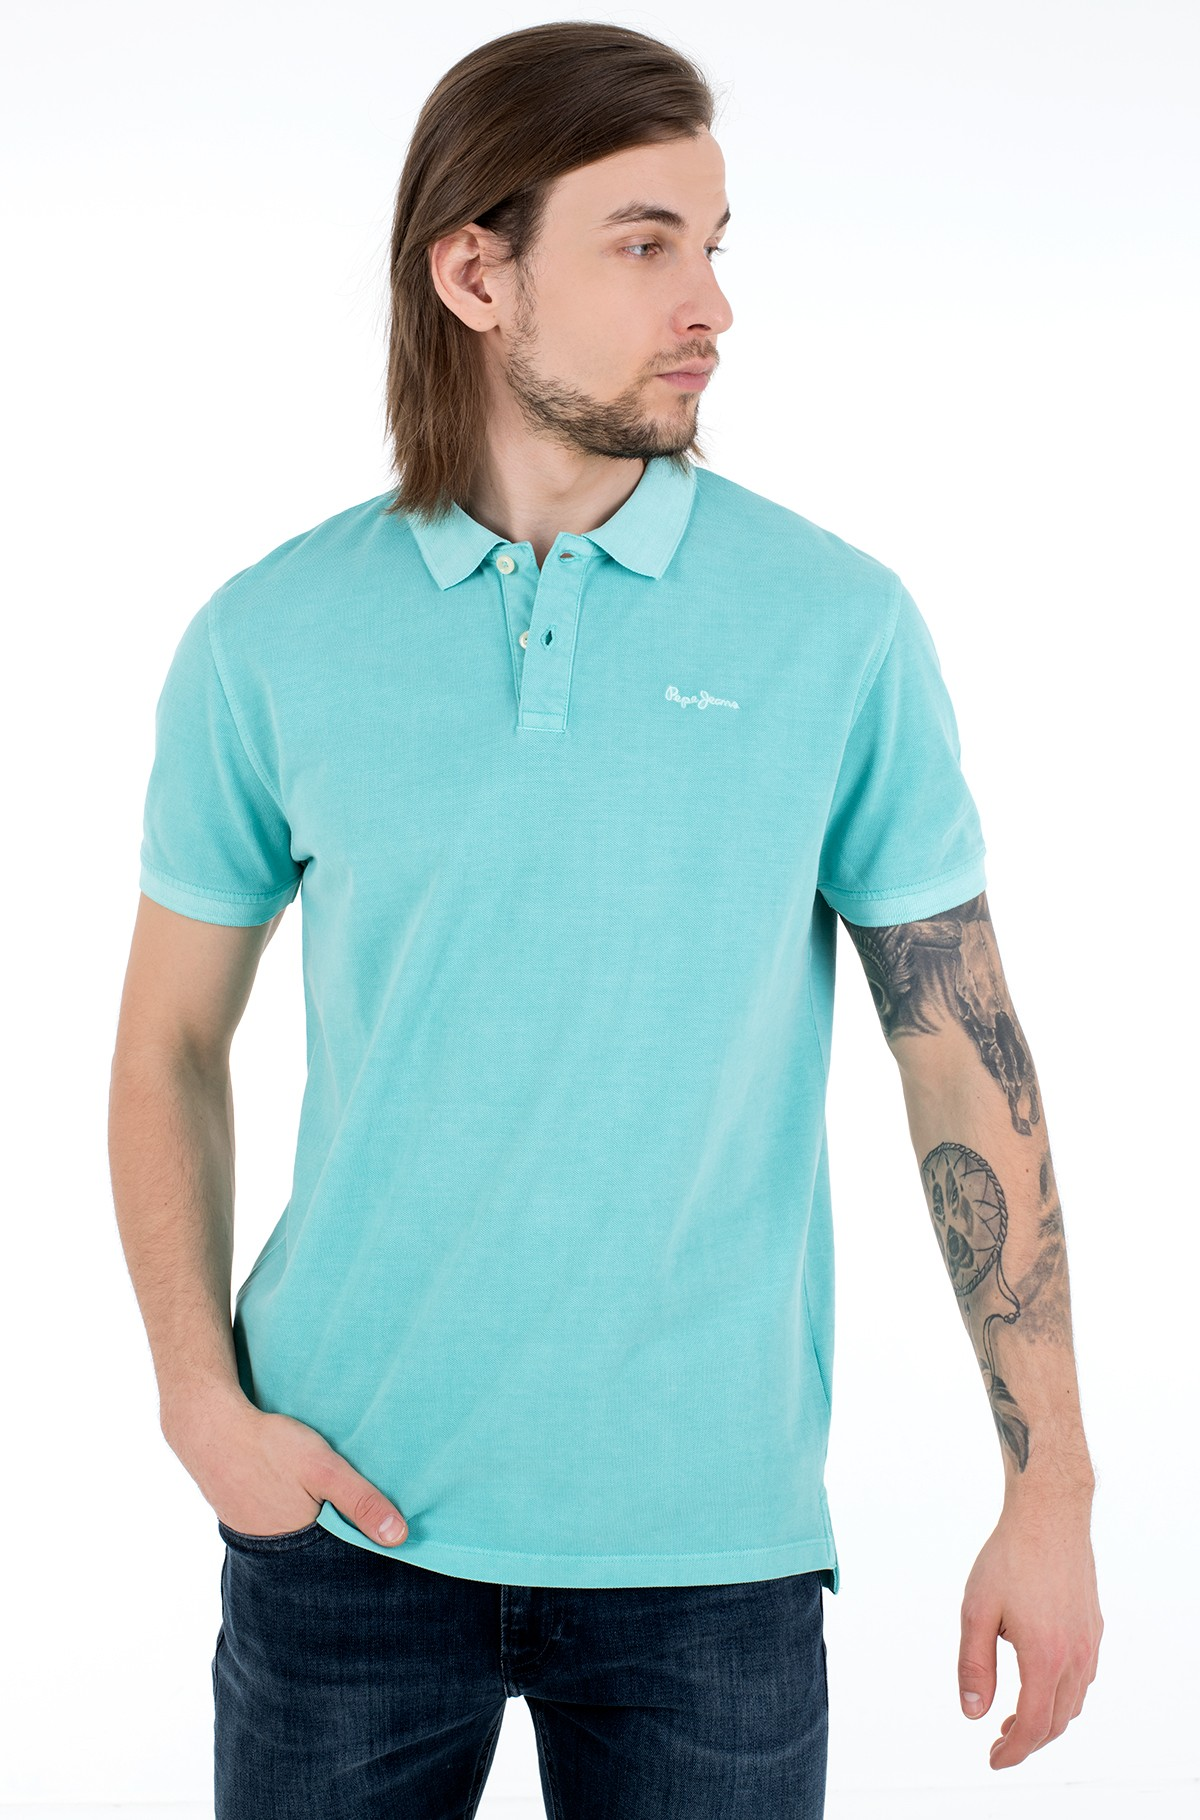 Polo VINCENT GD/PM541225-full-1